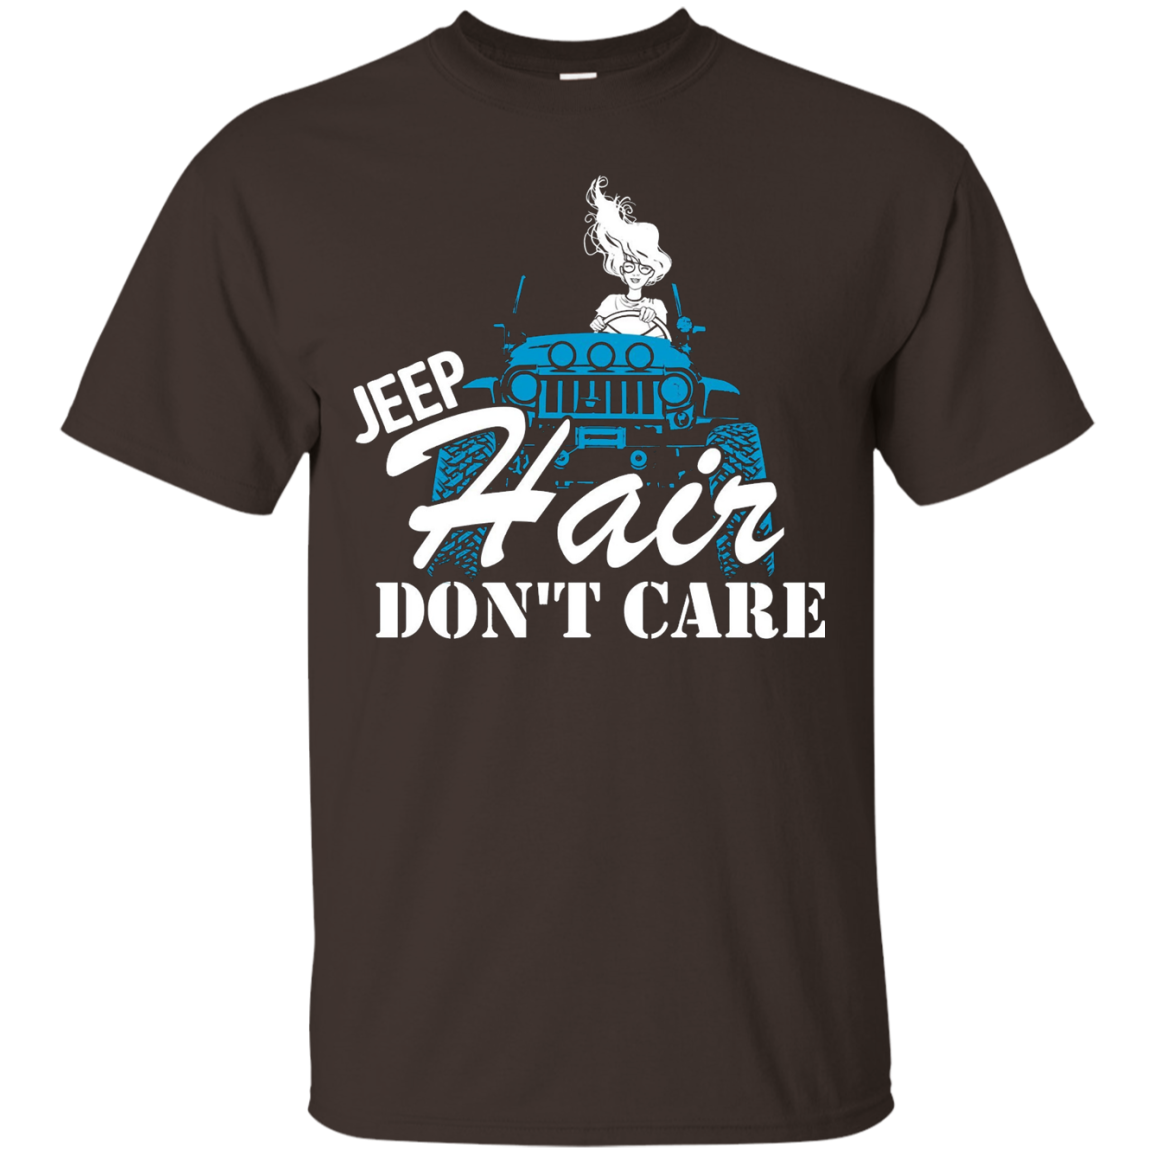 Limited Edition Jeep Hair Don't Care - Personalized Tees